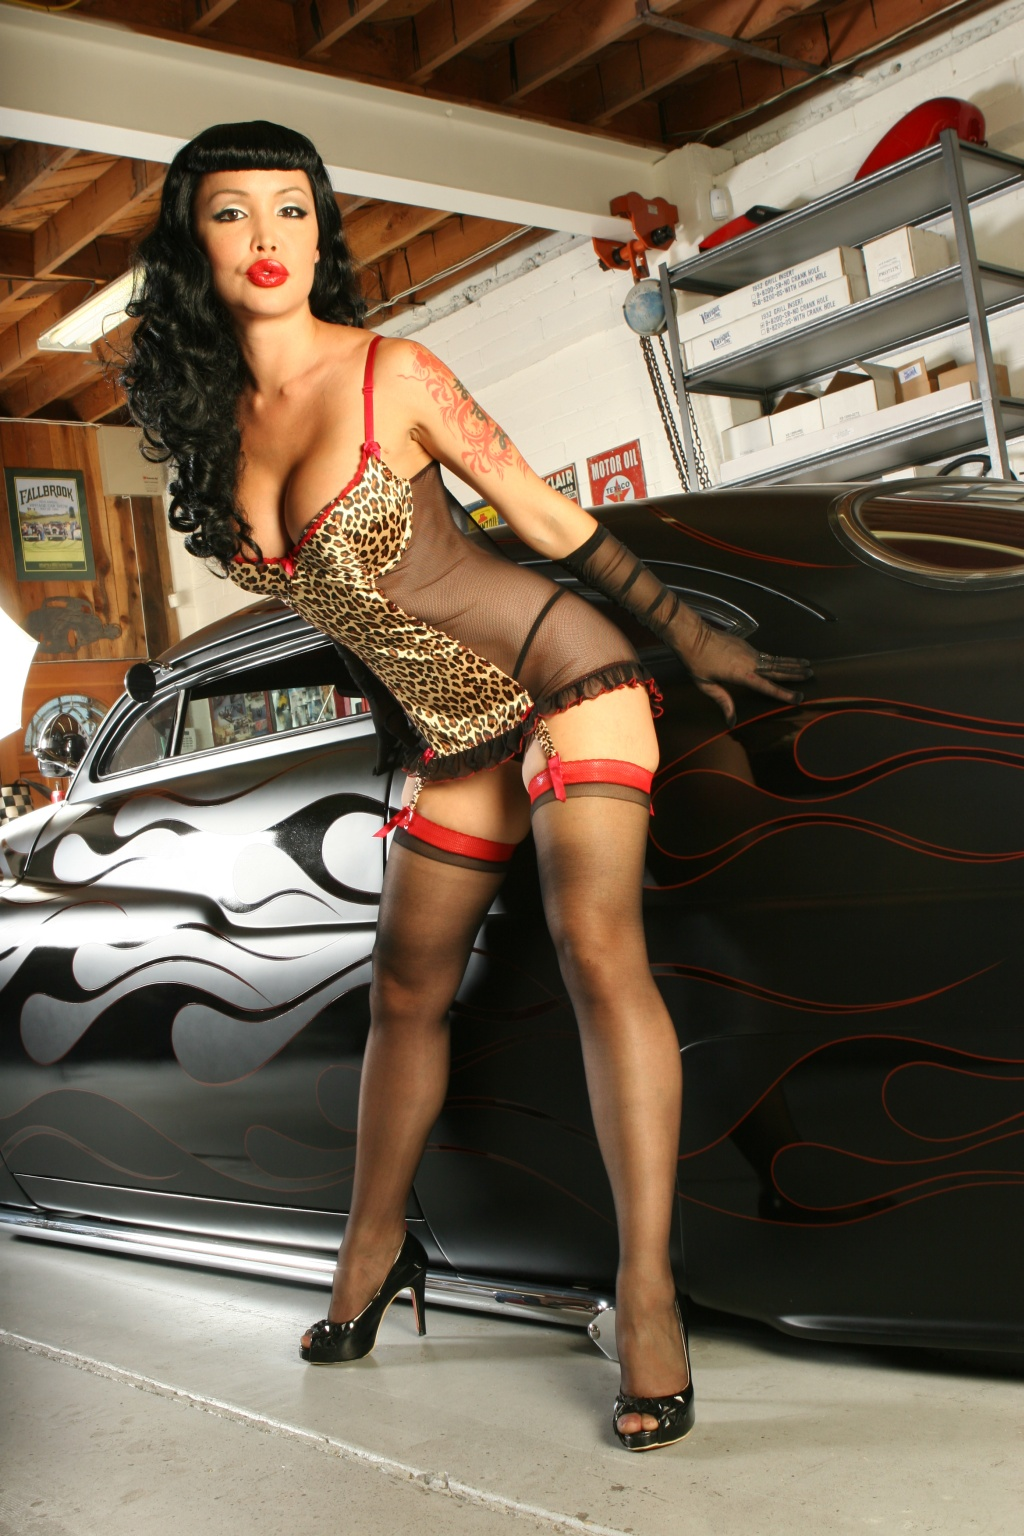 Sexy Pinup Girl Masuimi Max And Cool Kustom Merc It S